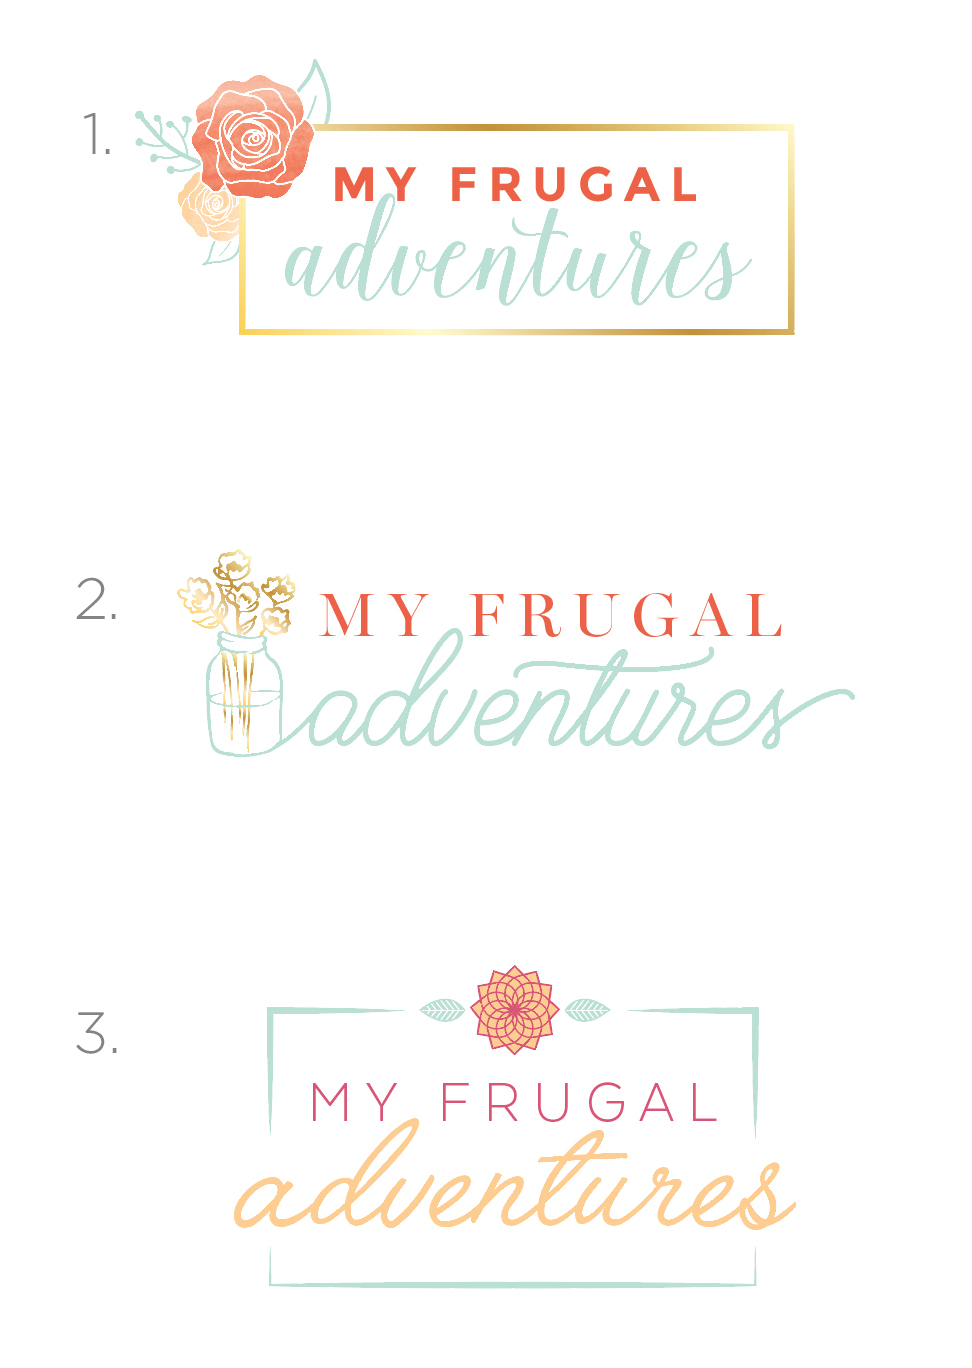 My Frugal Adventures Logo Concepts